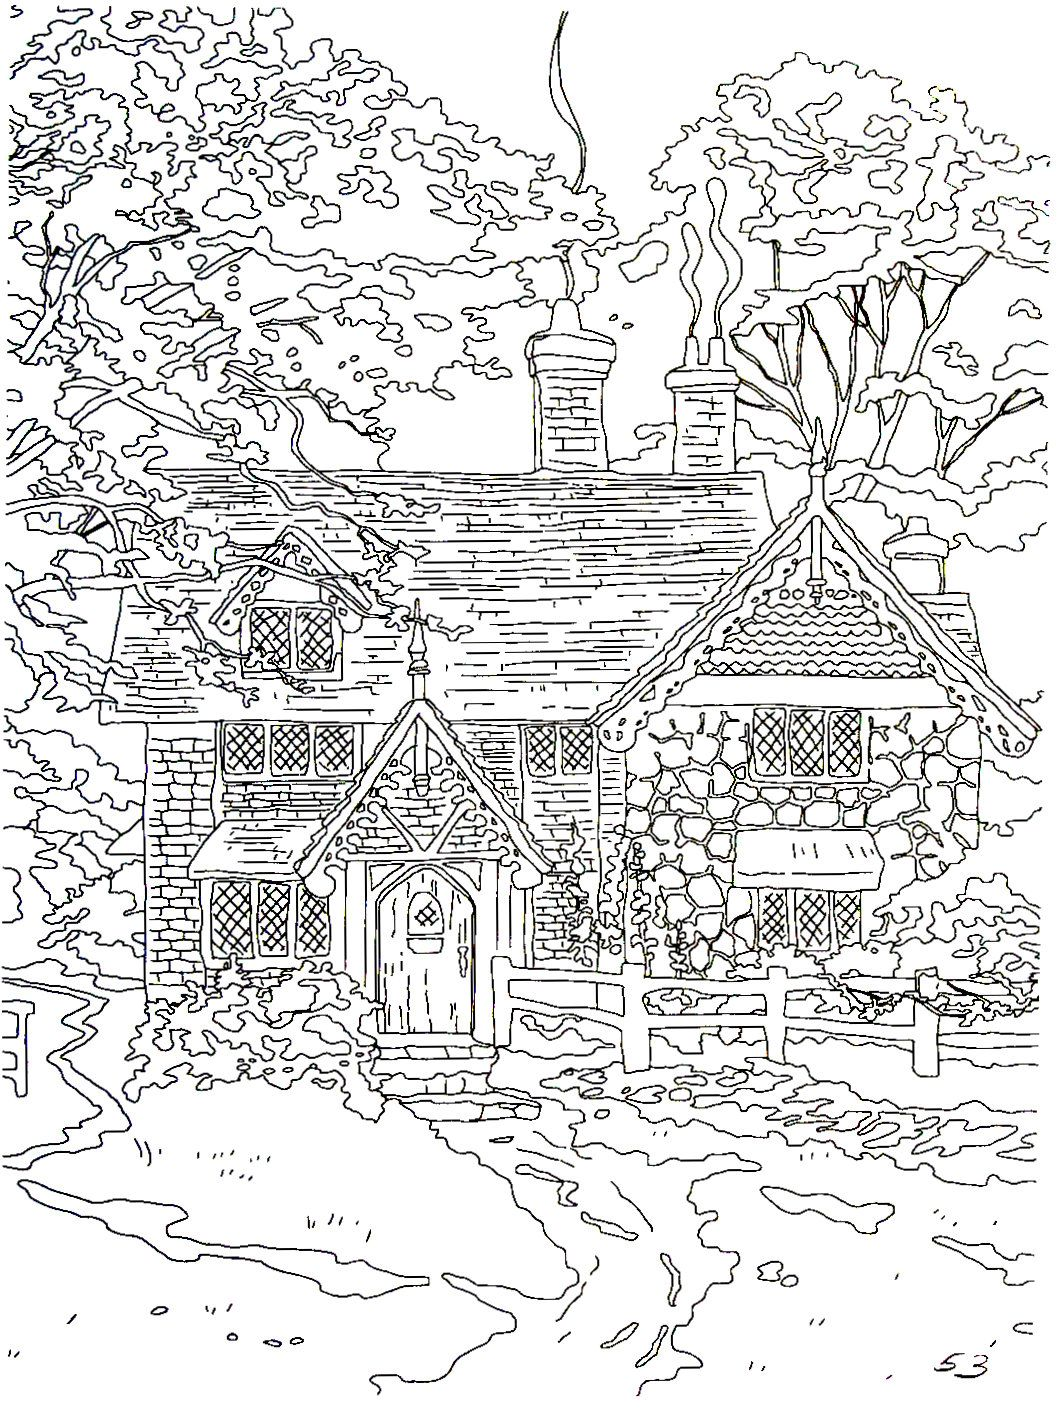 Gingerbread Cottage Thomas Kinkade Painting Coloring Book Printable Page Coloring Books Abstract Coloring Pages Coloring Pages